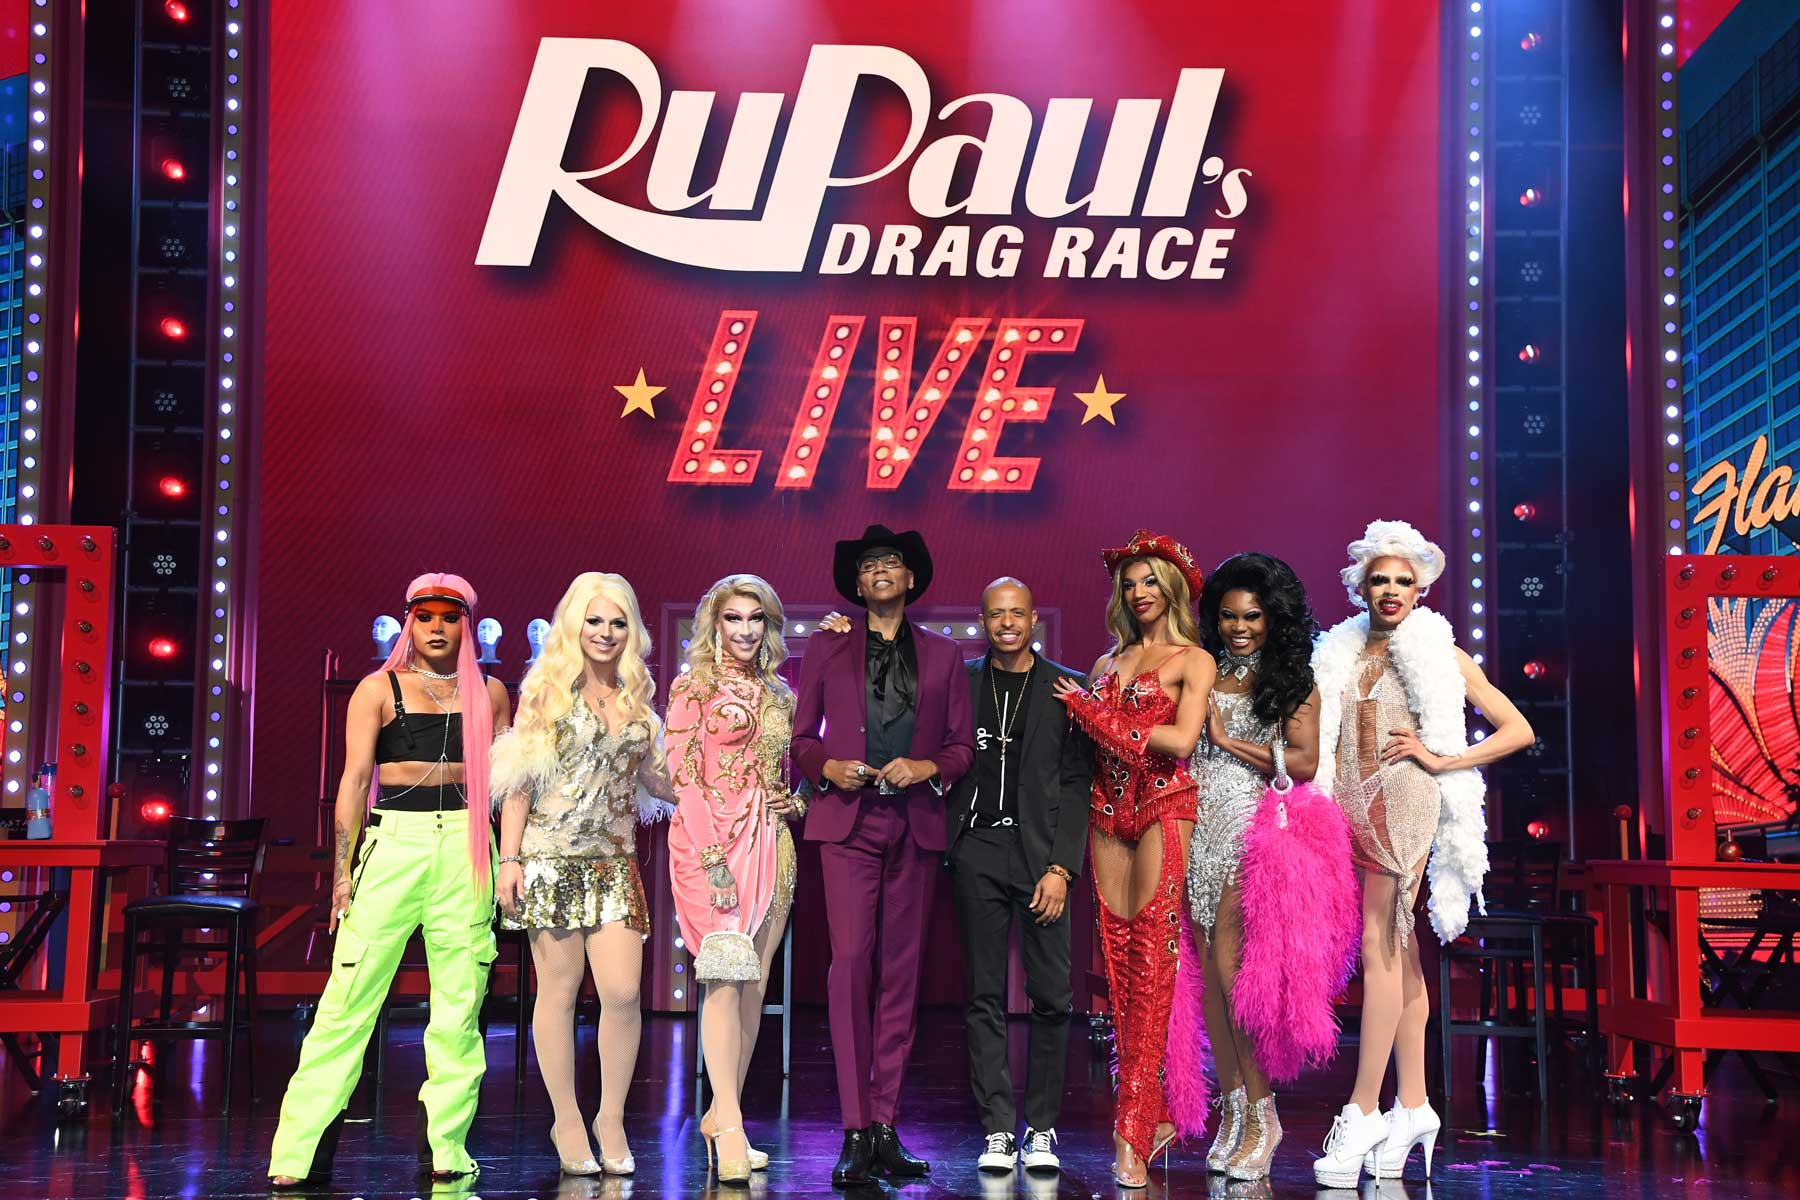 Cast member's of RuPaul's Drag Race Live in Las Vegas